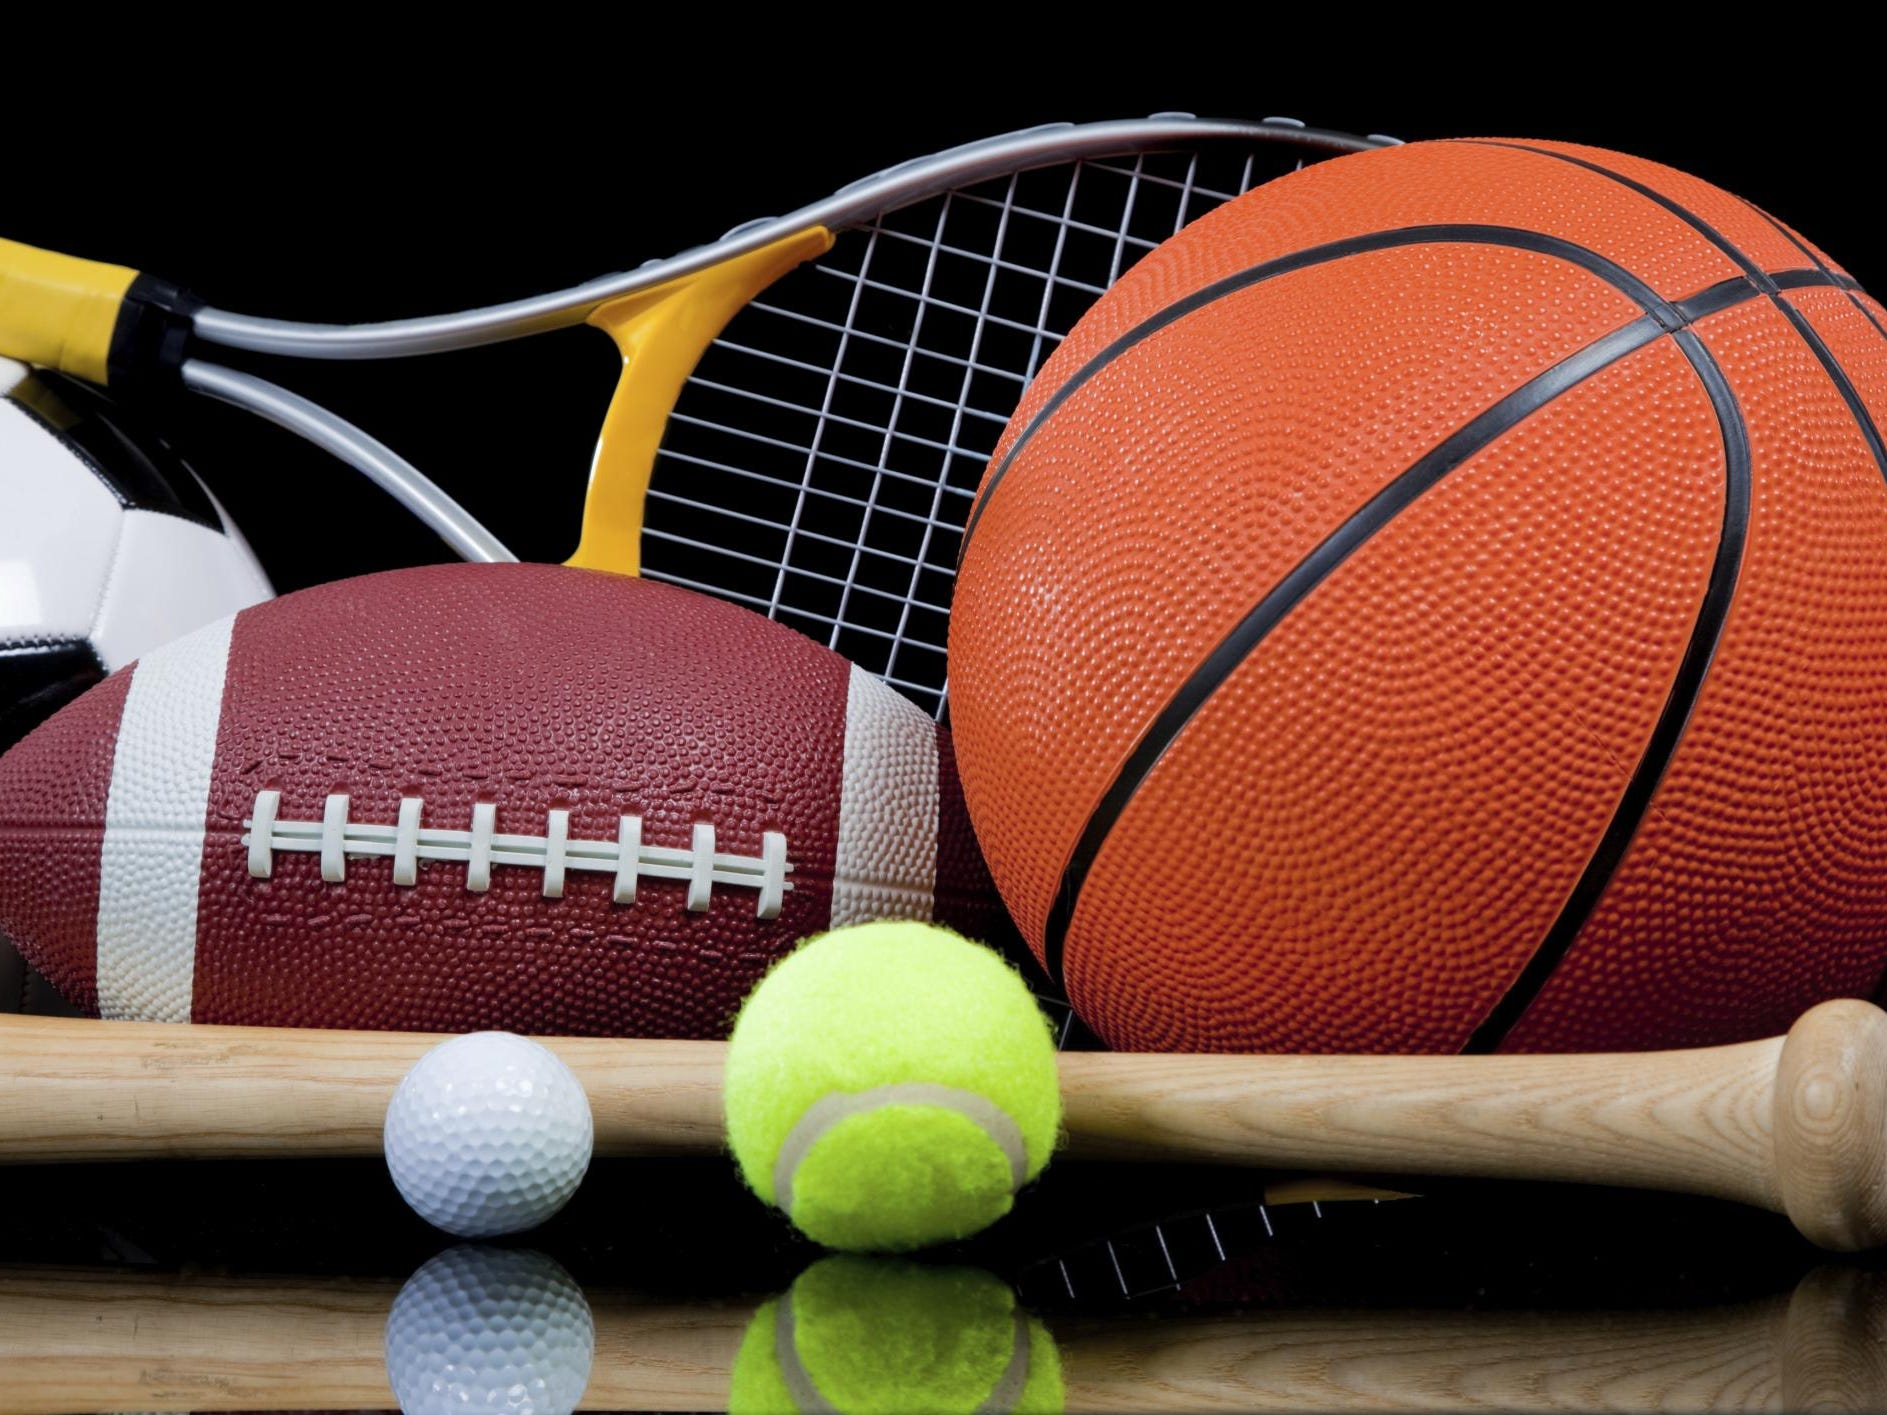 Assorted Sports Equipment on Black